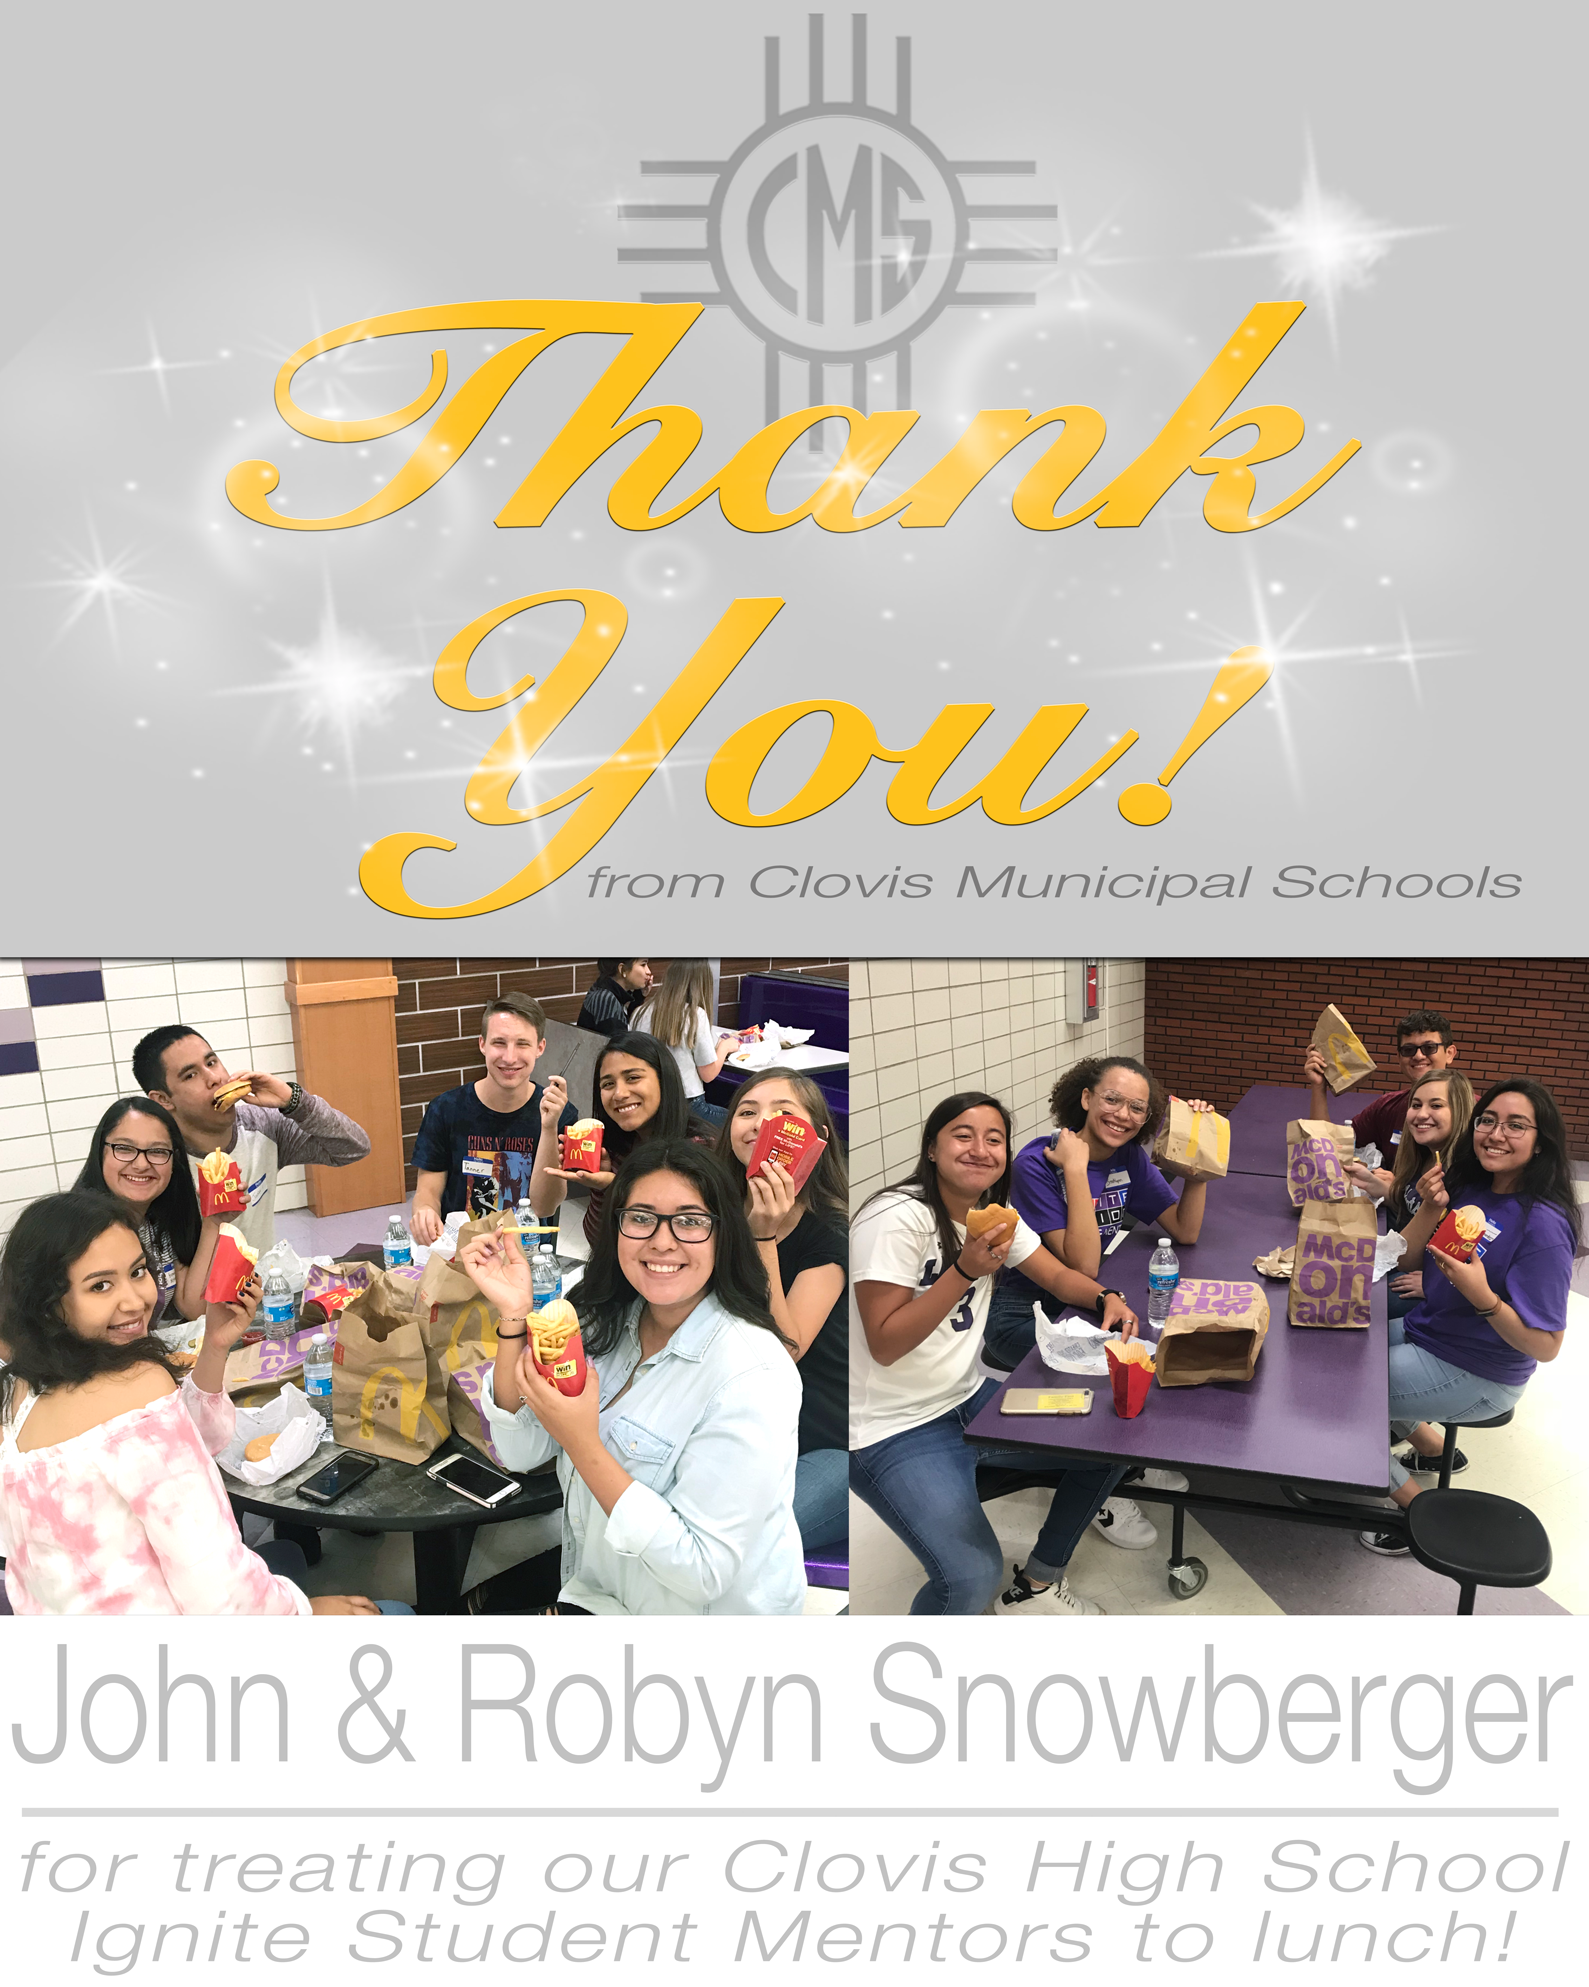 Image of text Thanking John and Robyn Snowberger